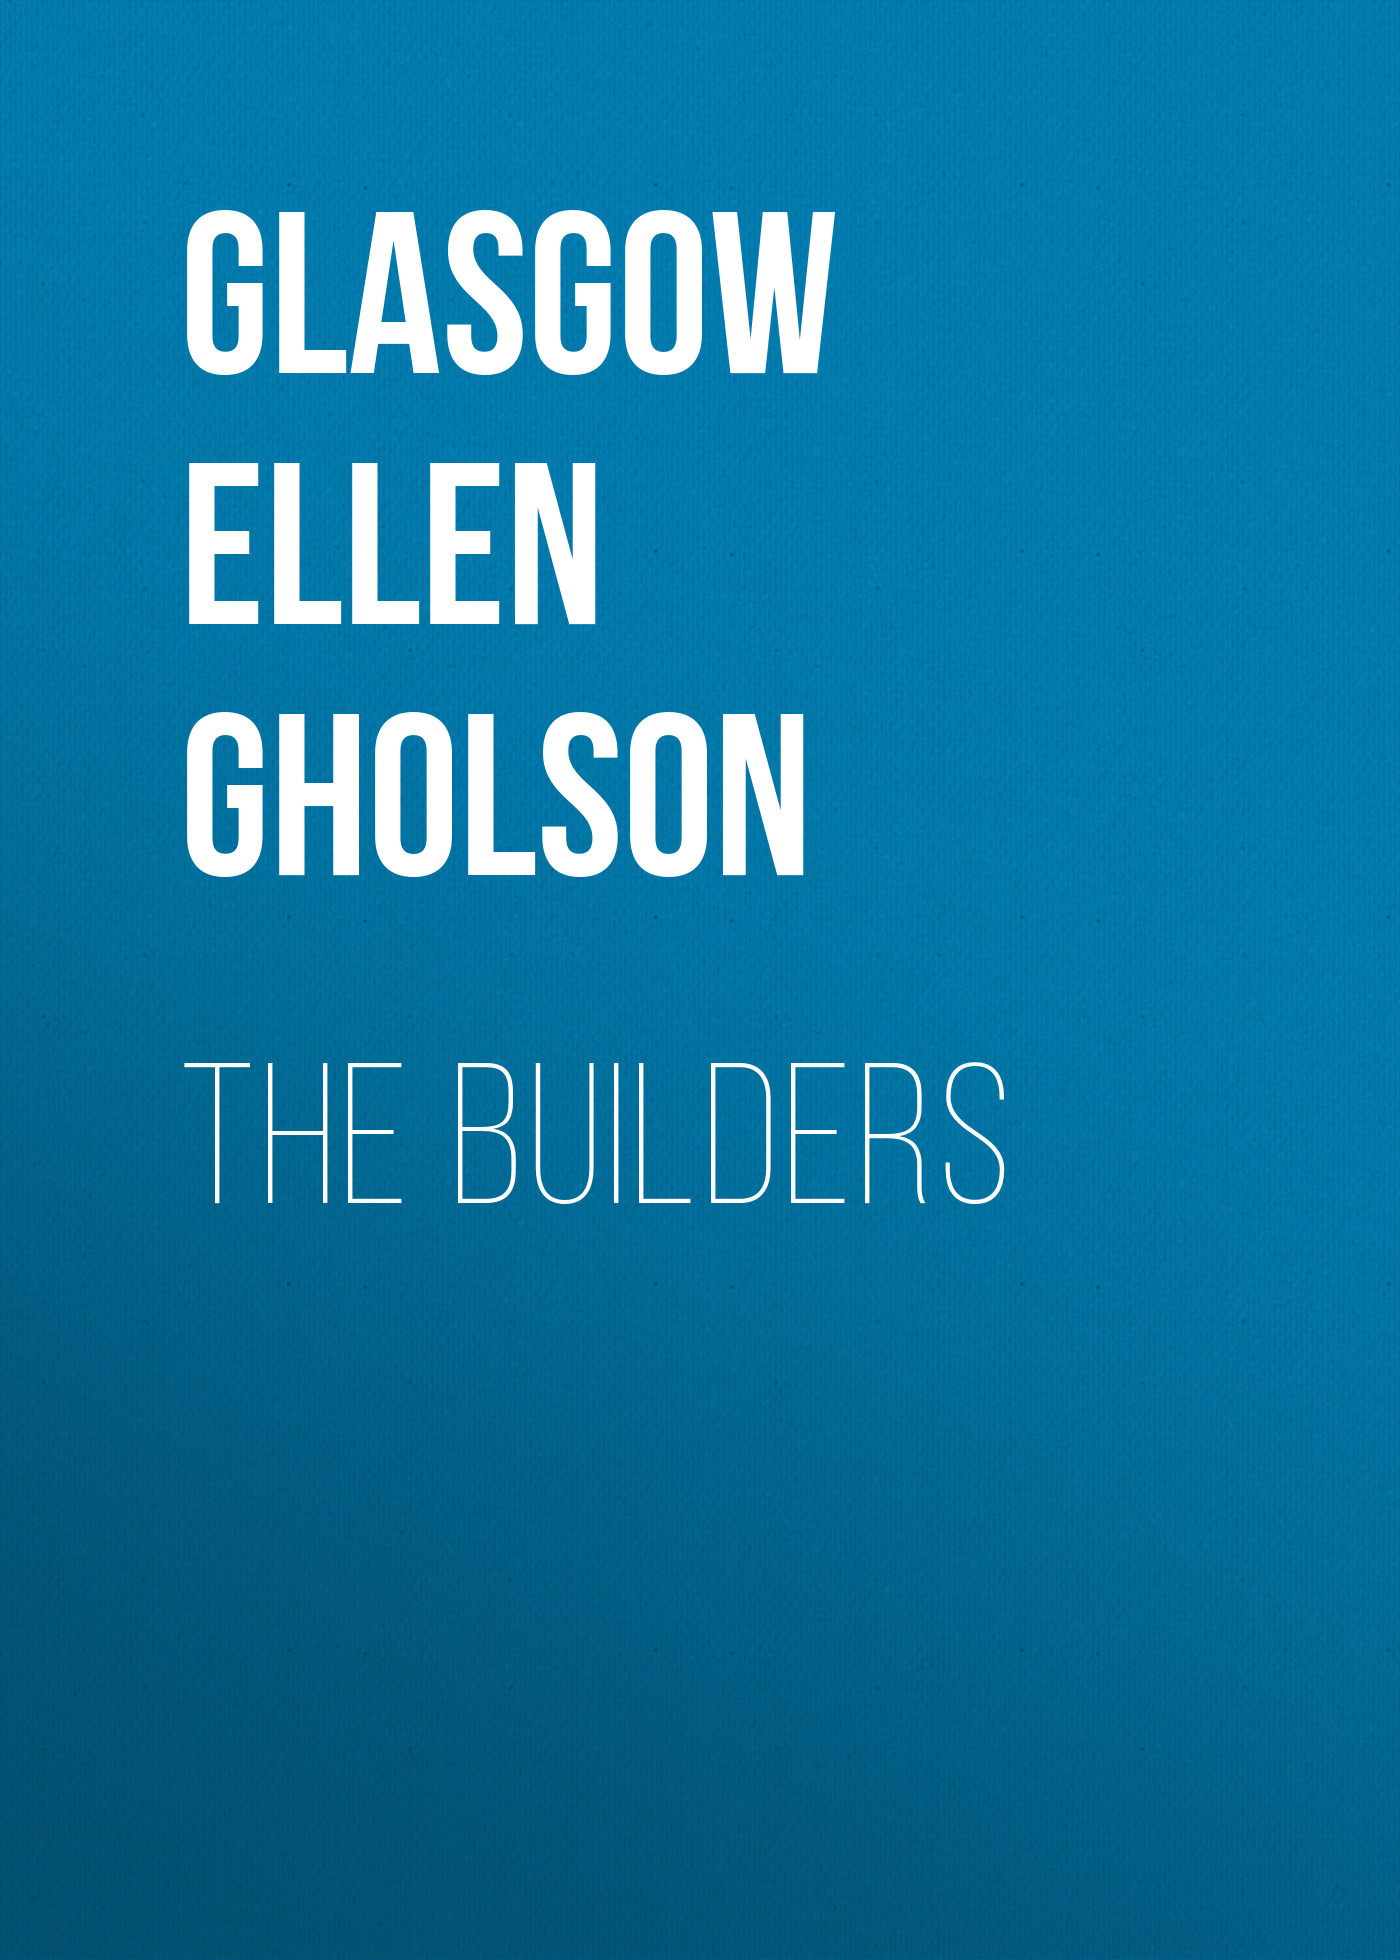 Glasgow Ellen Anderson Gholson The Builders shinedown glasgow